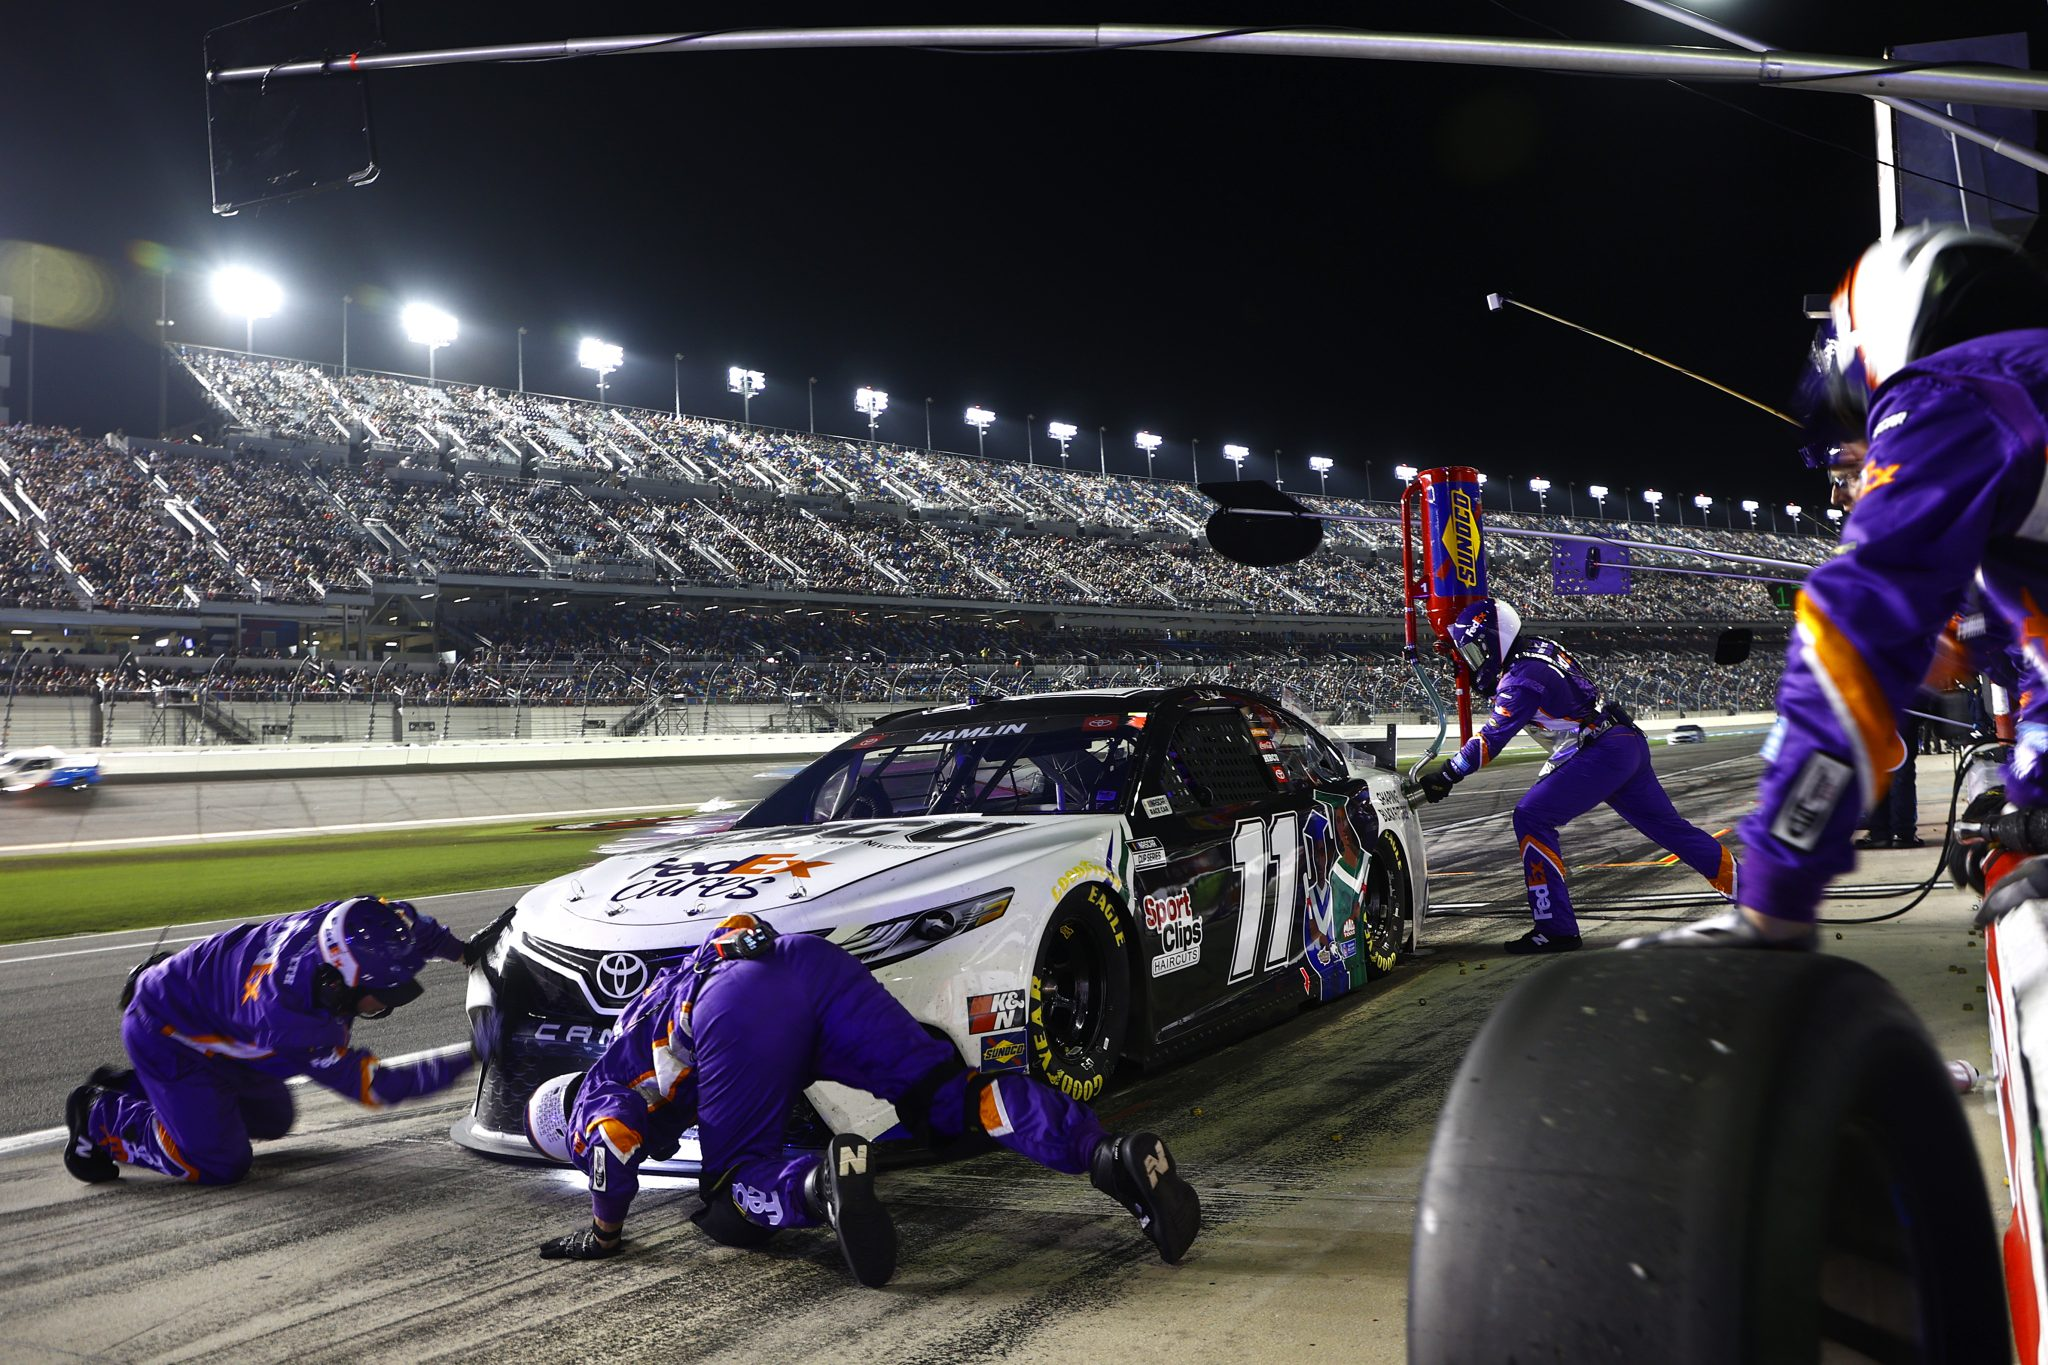 DAYTONA BEACH, FLORIDA - AUGUST 28: Denny Hamlin, driver of the #11 FedEx Shaping Black Futures Toyota, pits during the NASCAR Cup Series Coke Zero Sugar 400 at Daytona International Speedway on August 28, 2021 in Daytona Beach, Florida. (Photo by Jared C. Tilton/Getty Images)   Getty Images